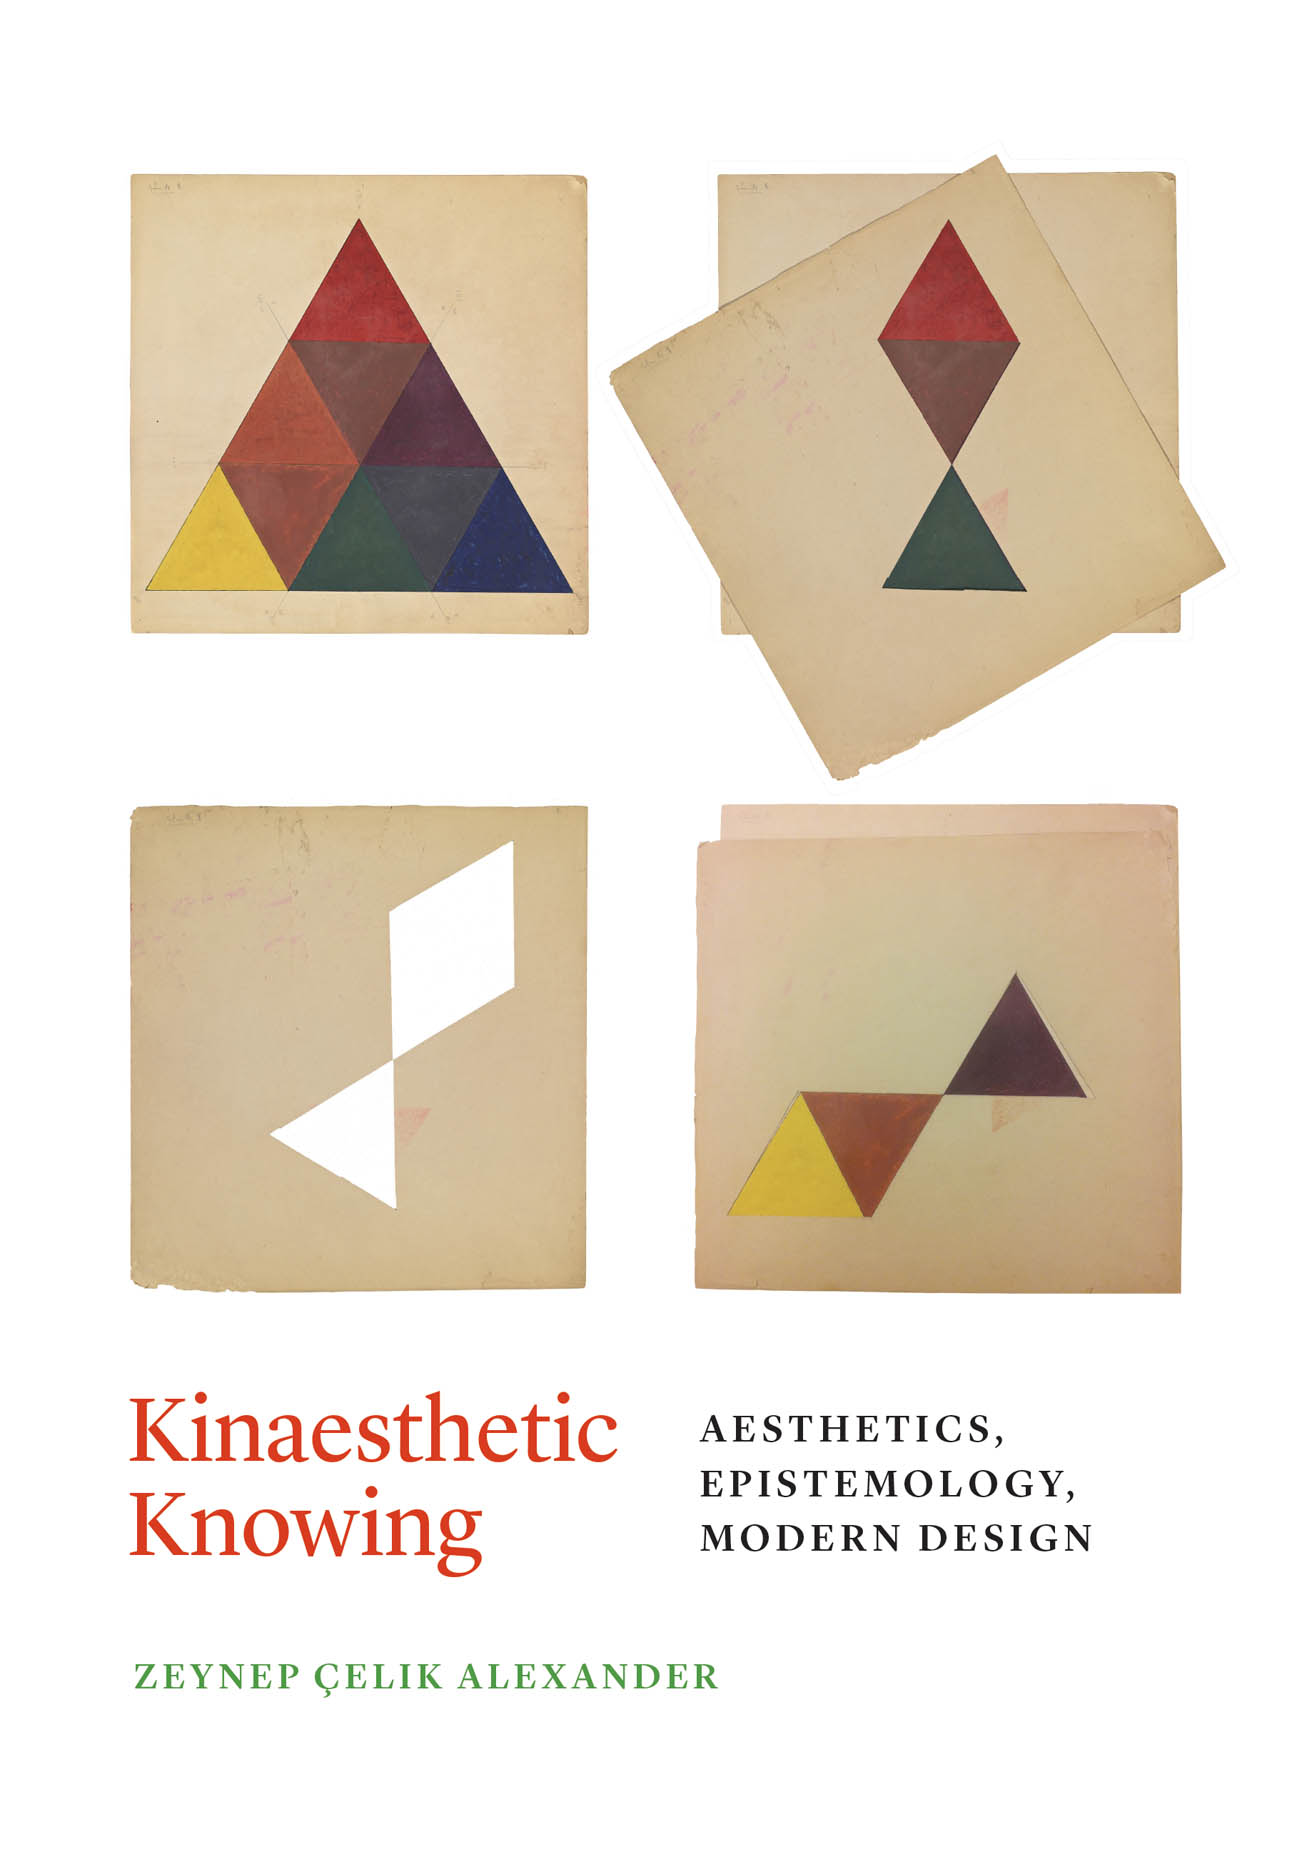 Kinaesthetic Knowing: Aesthetics, Epistemology, Modern Design